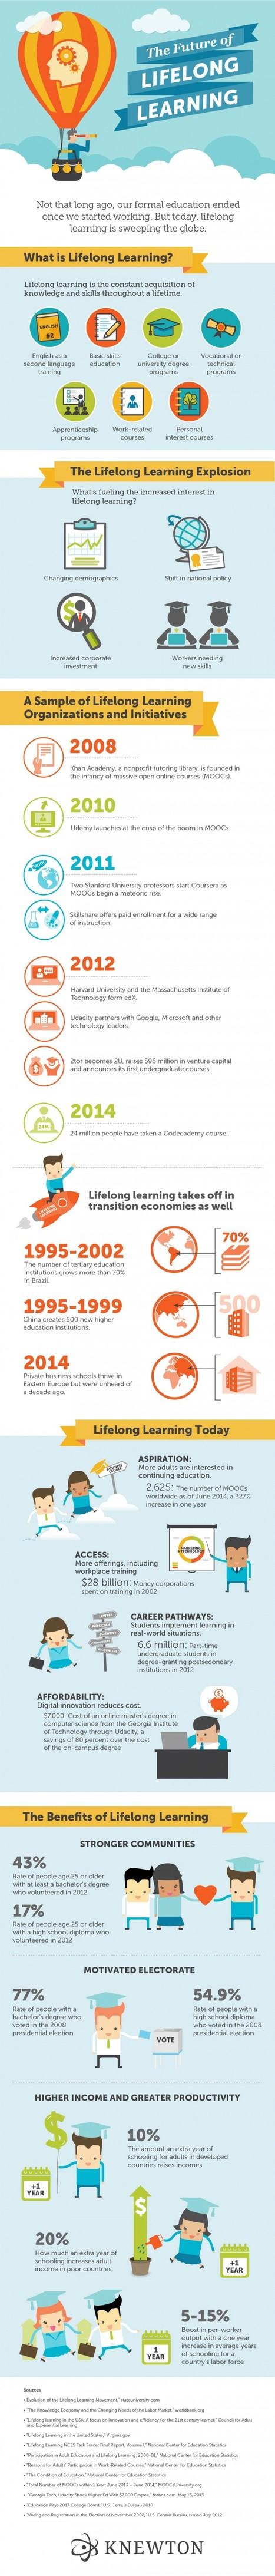 The Future of Lifelong Learning Infographic | eSkills | Café puntocom Leche | Scoop.it